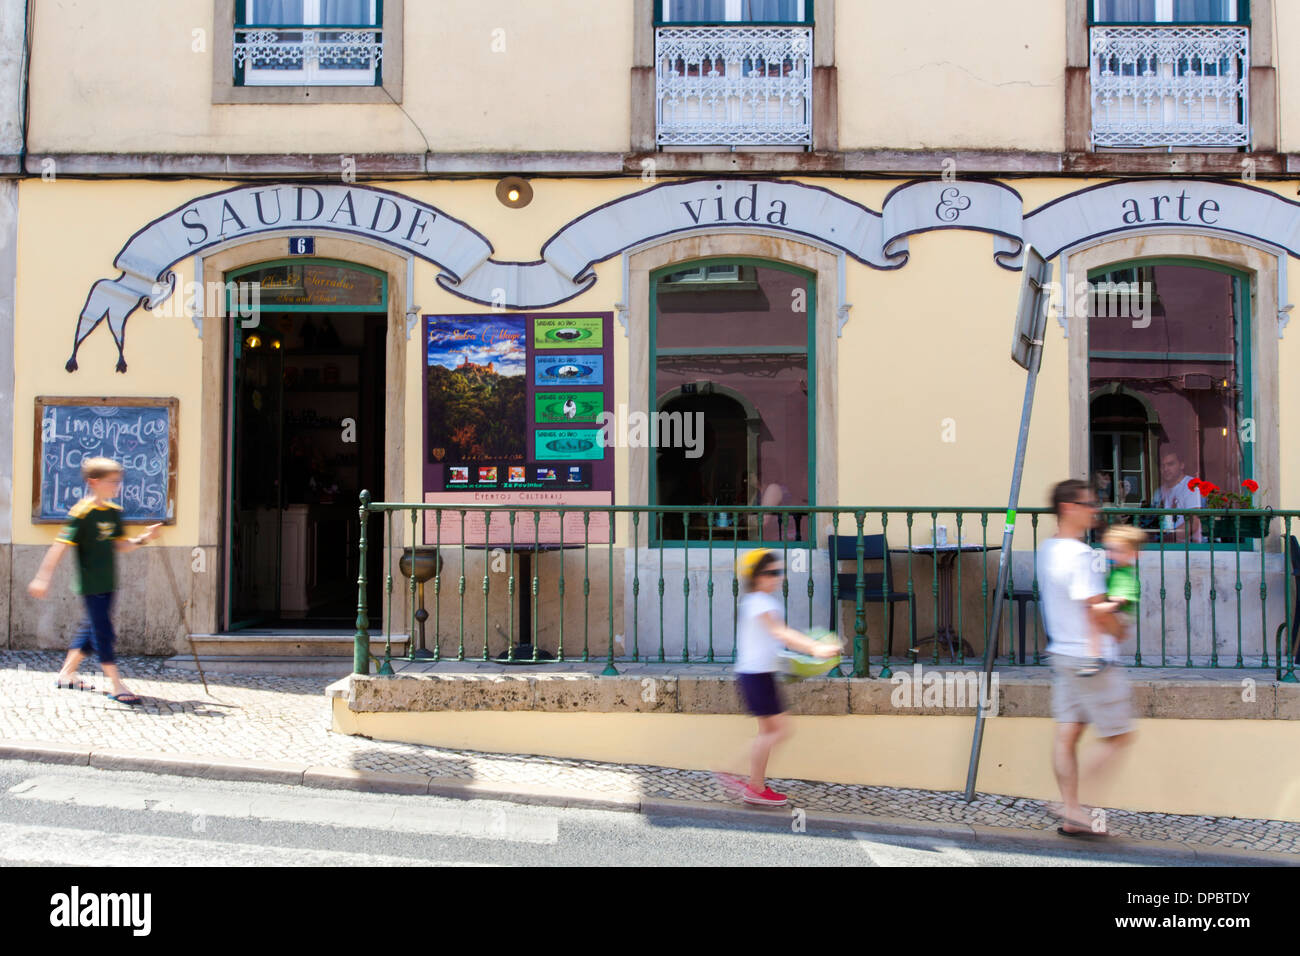 Caf 233 Saudade Vintage Coffee House In Sintra Portugal Stock Photo Royalty Free Image 65414215